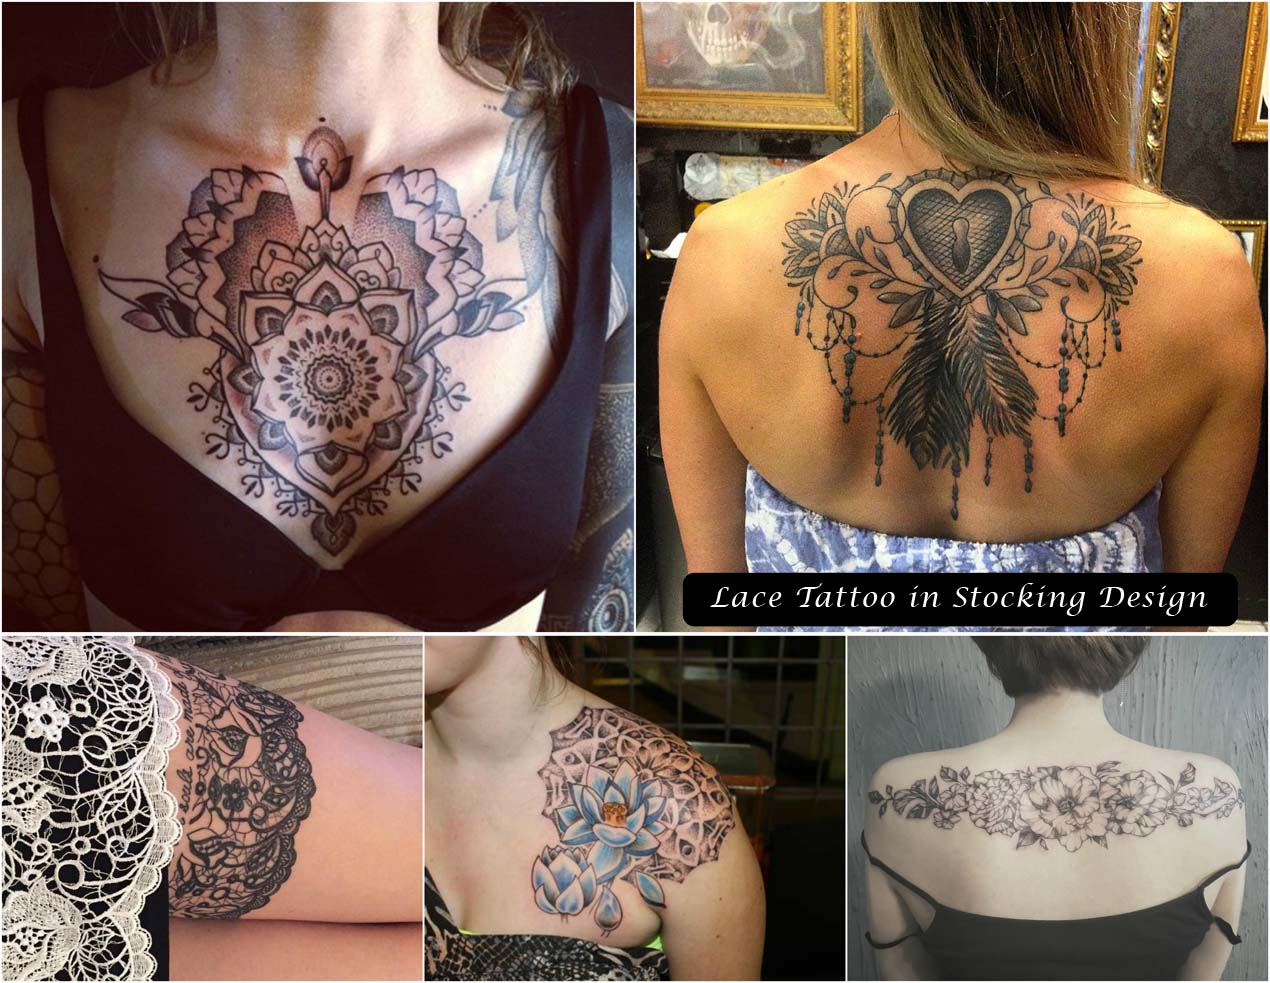 Lace Tattoo in Stocking Design